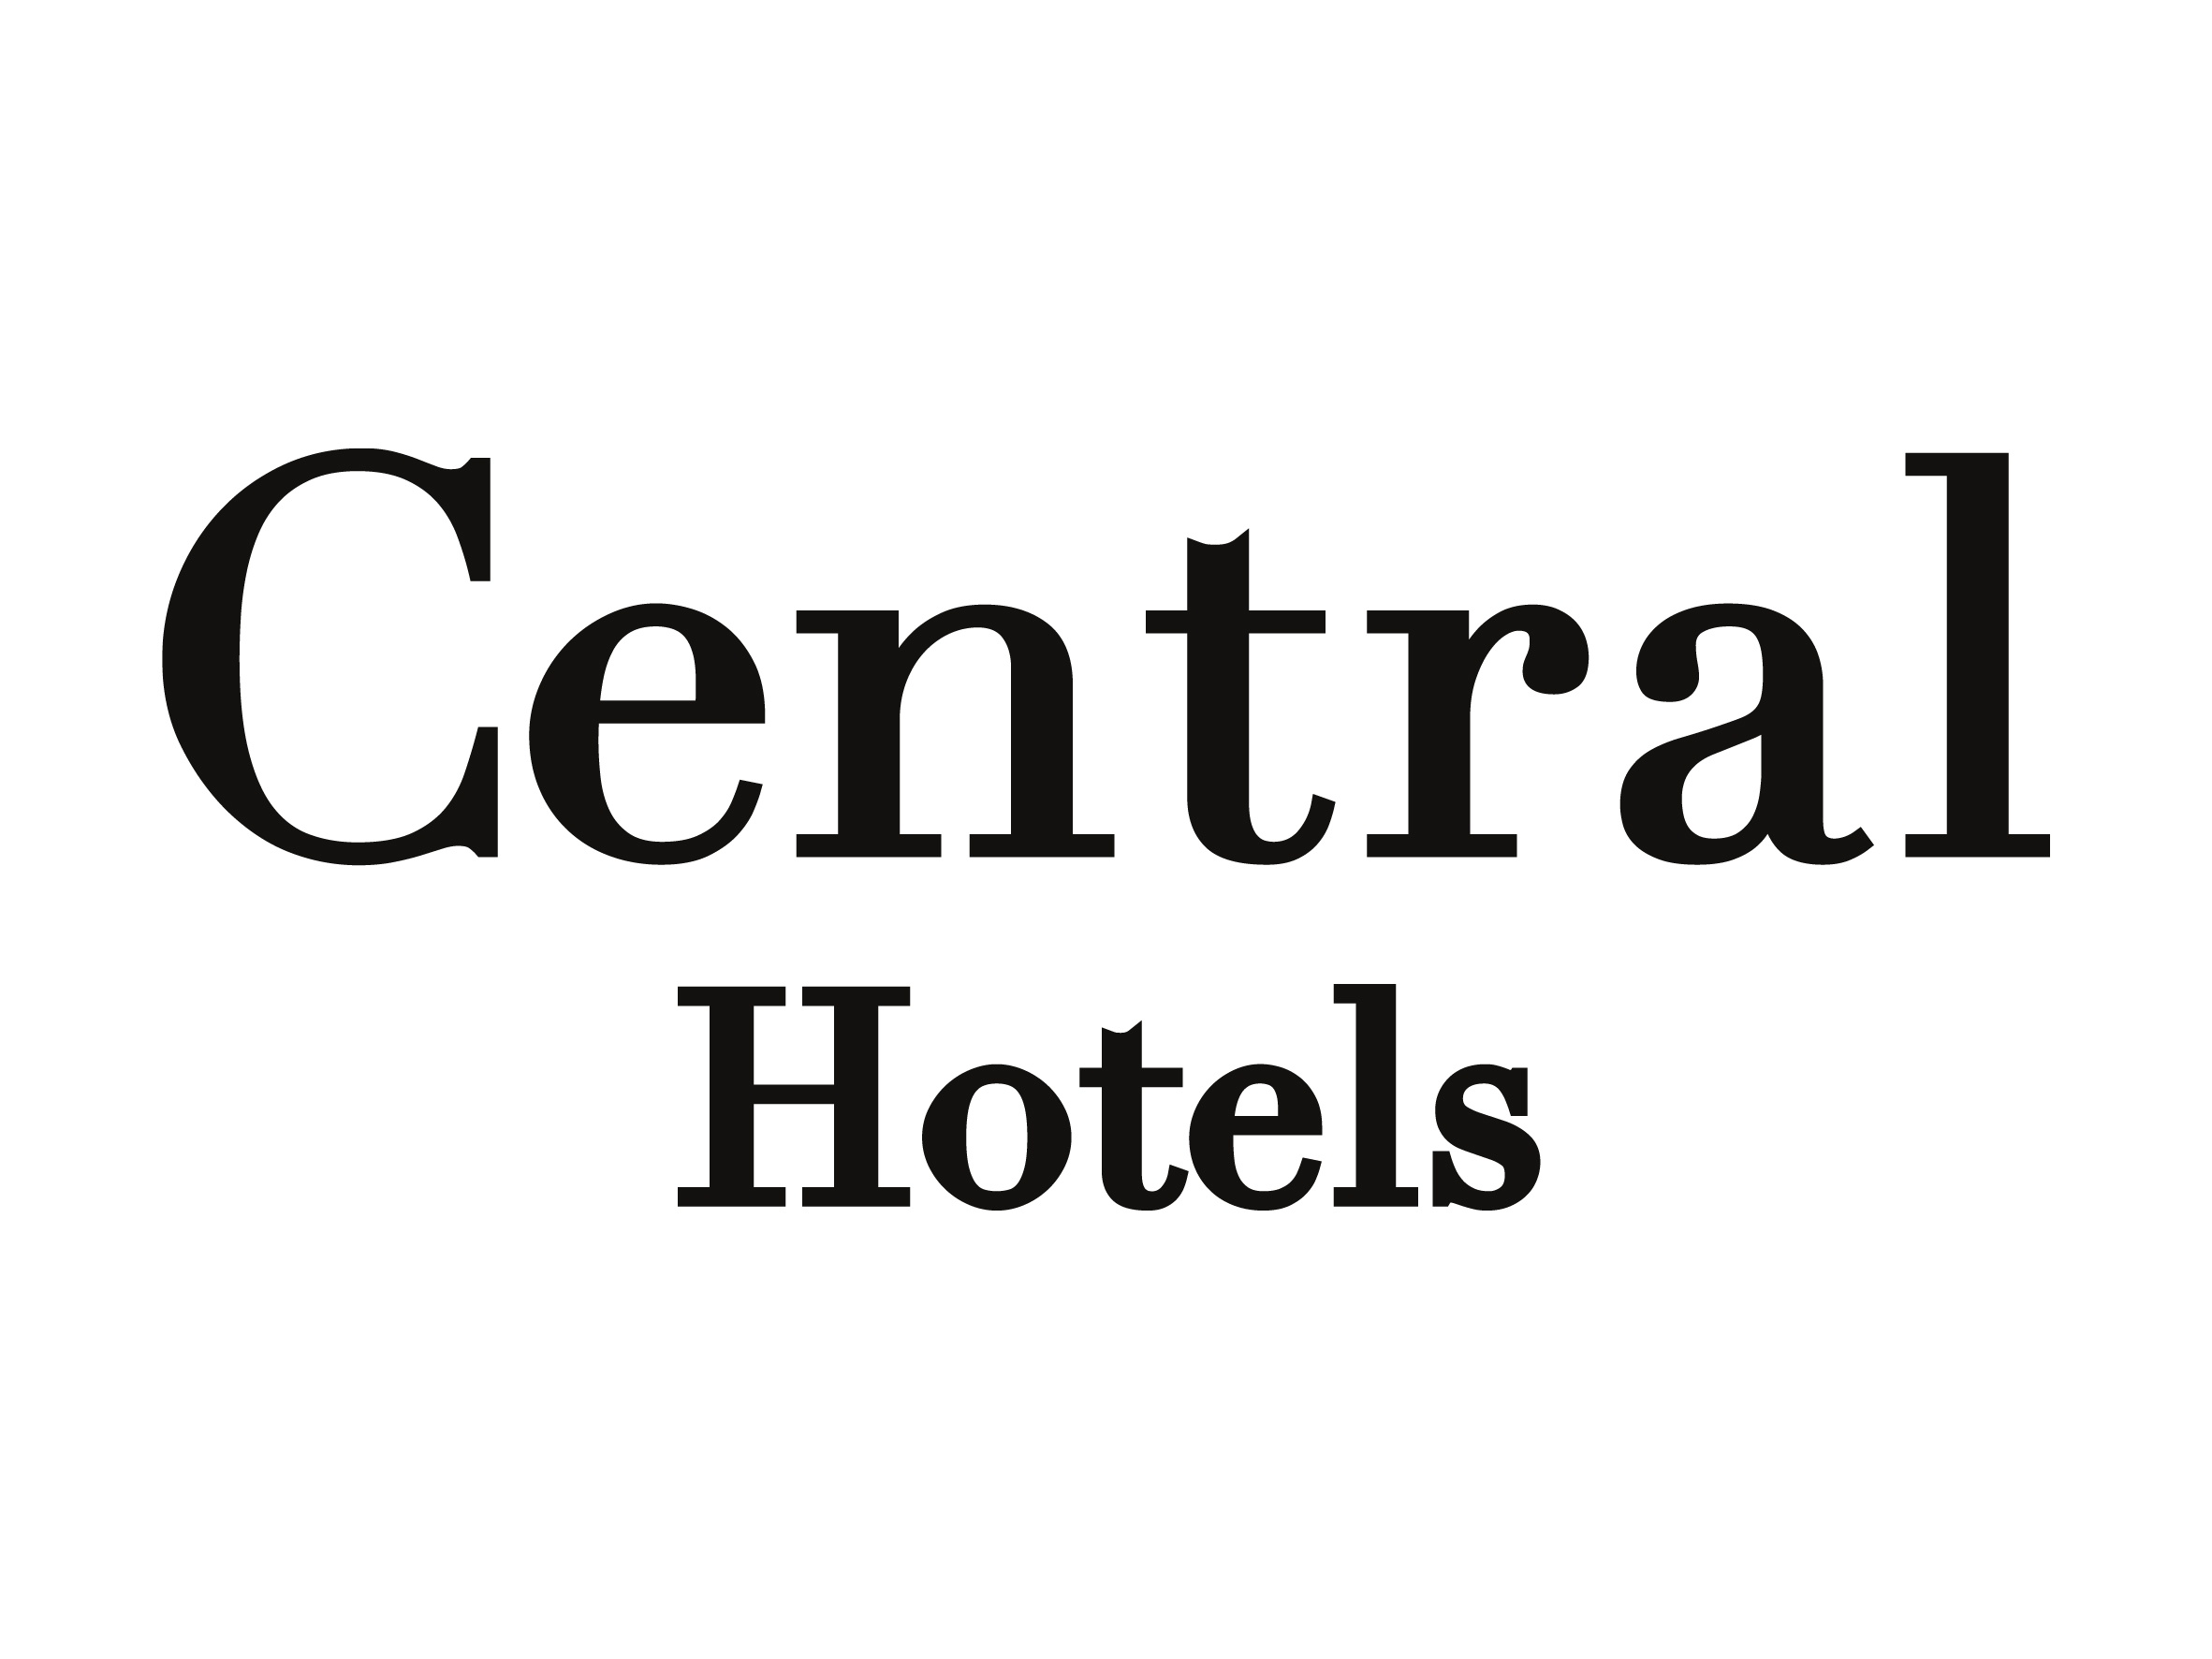 Central Hotels in Dubai gears up for rapid growth with xnPOS and protel PMS from Xn protel Systems